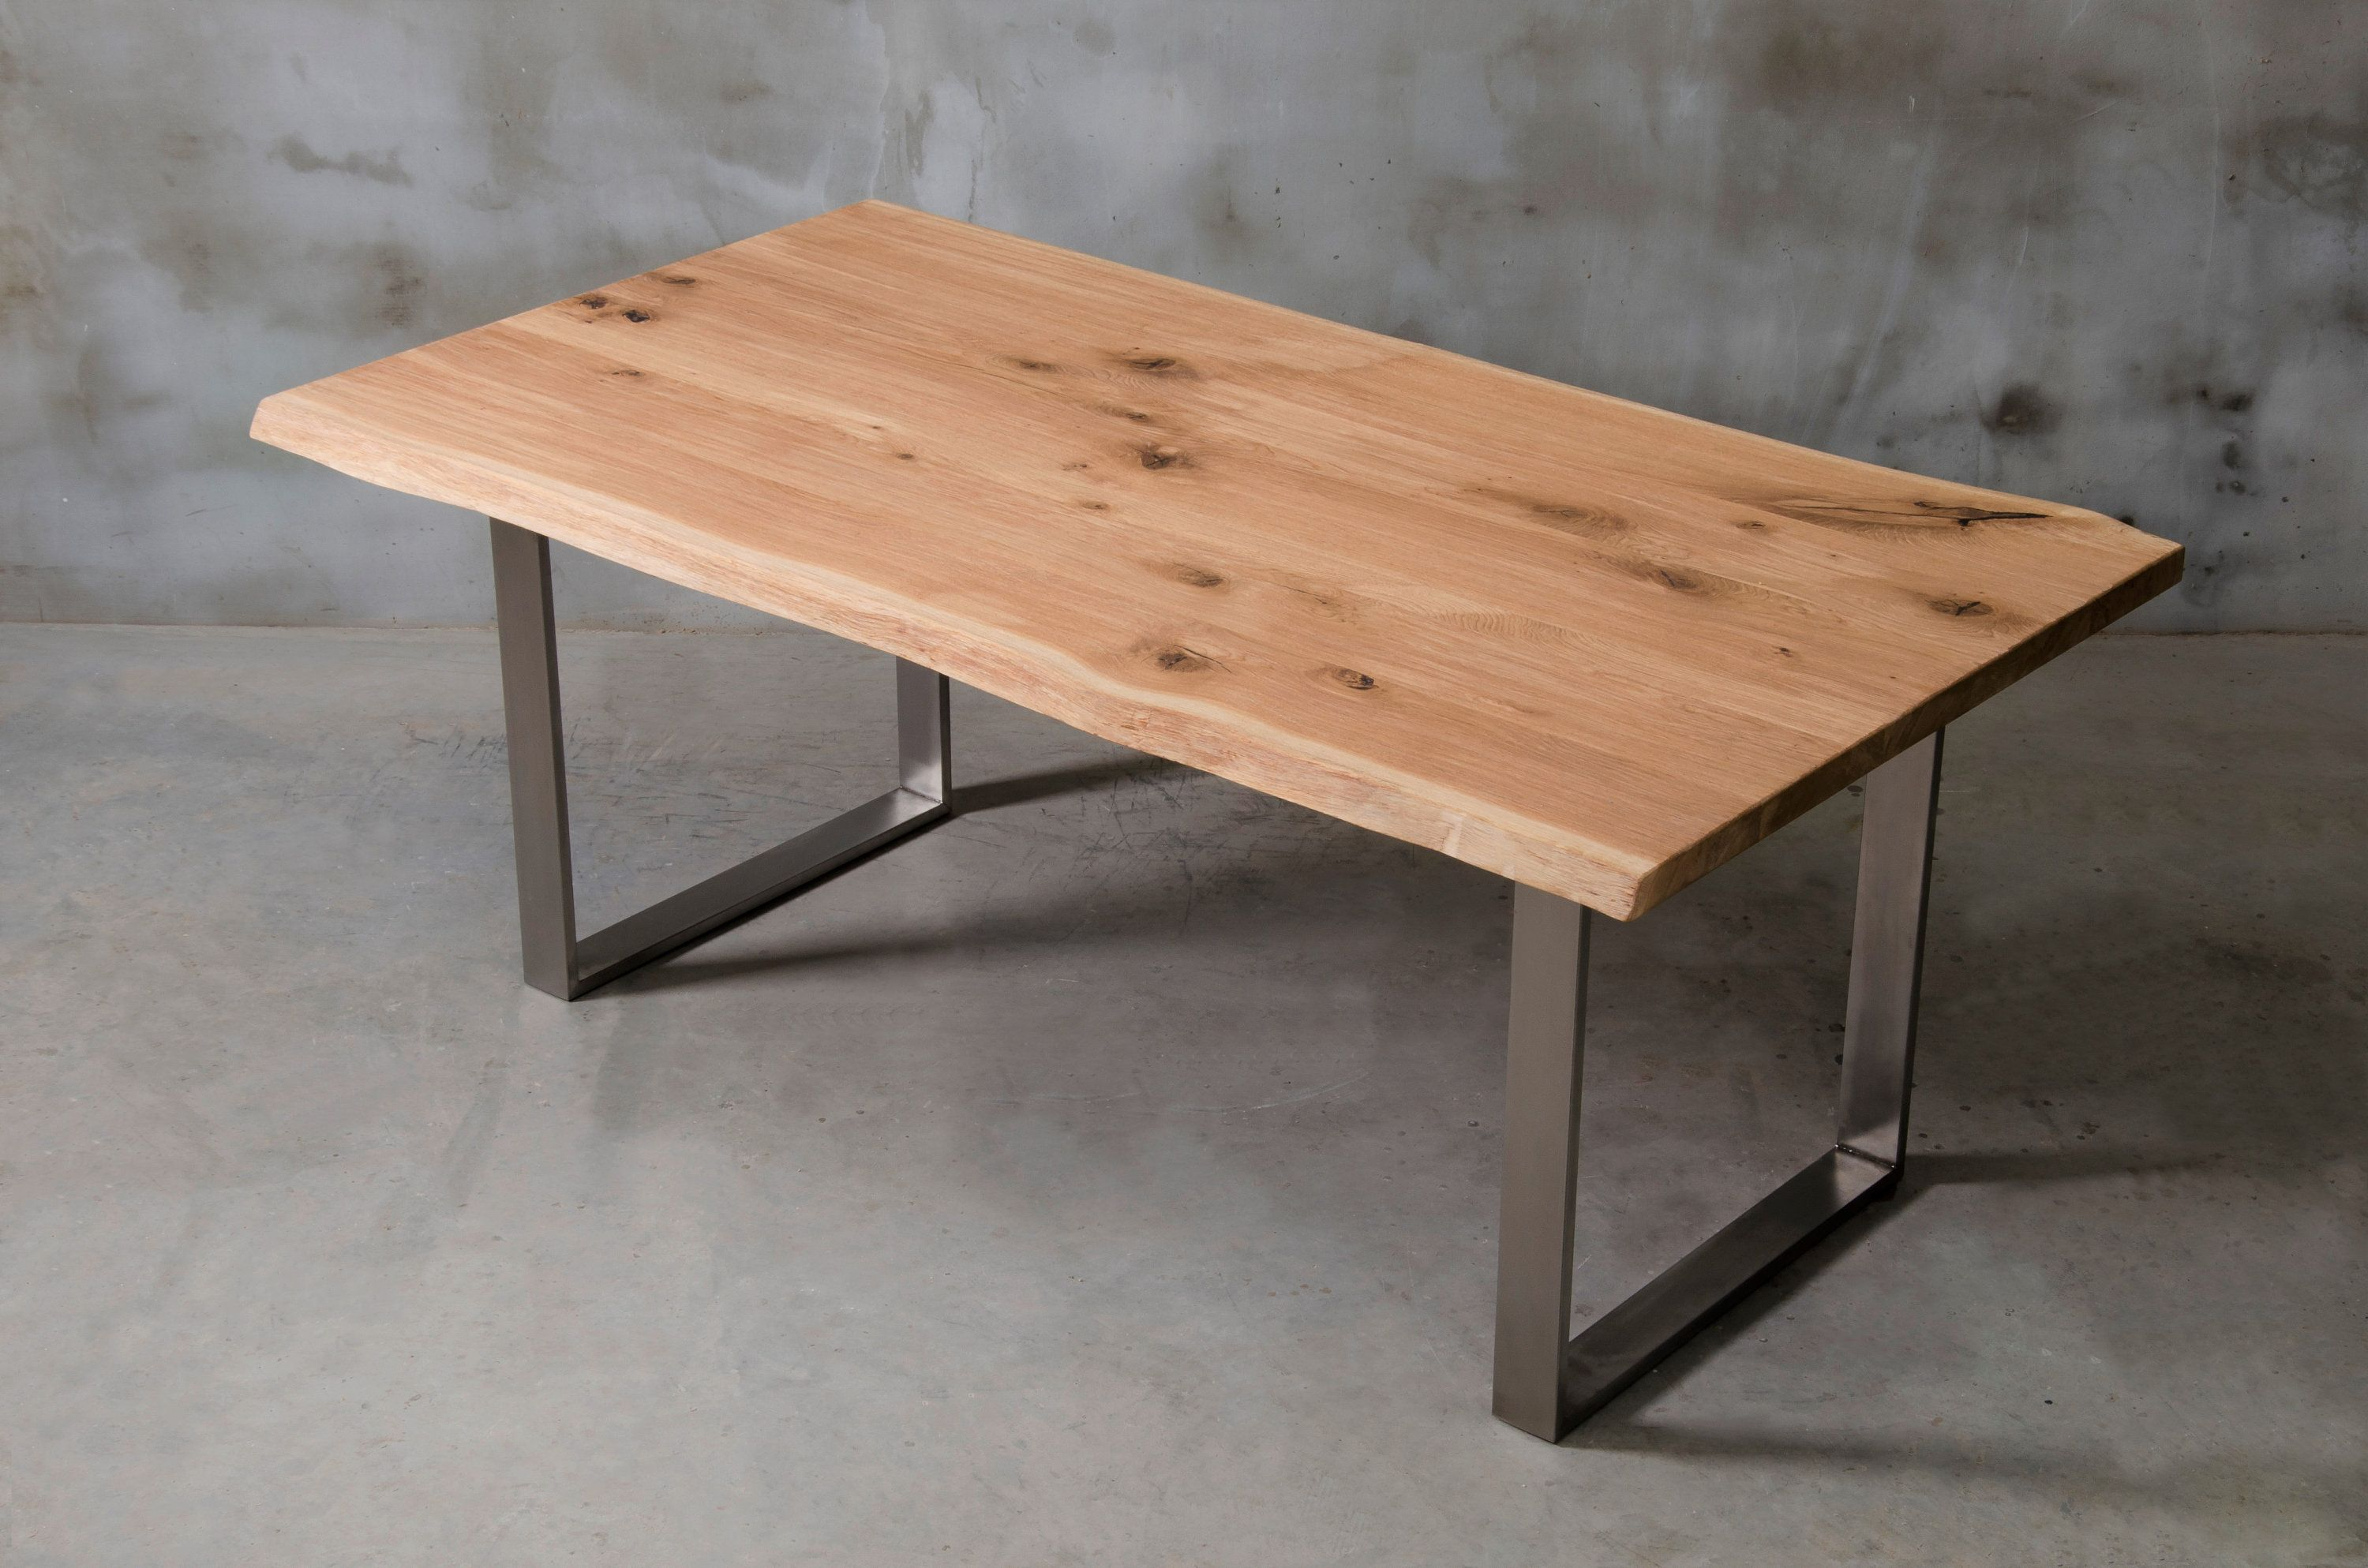 Custom Live Edge Table With Brushed Steel Legs Brushed Oak Dining Table Modern Wooden Table Industrial Table For